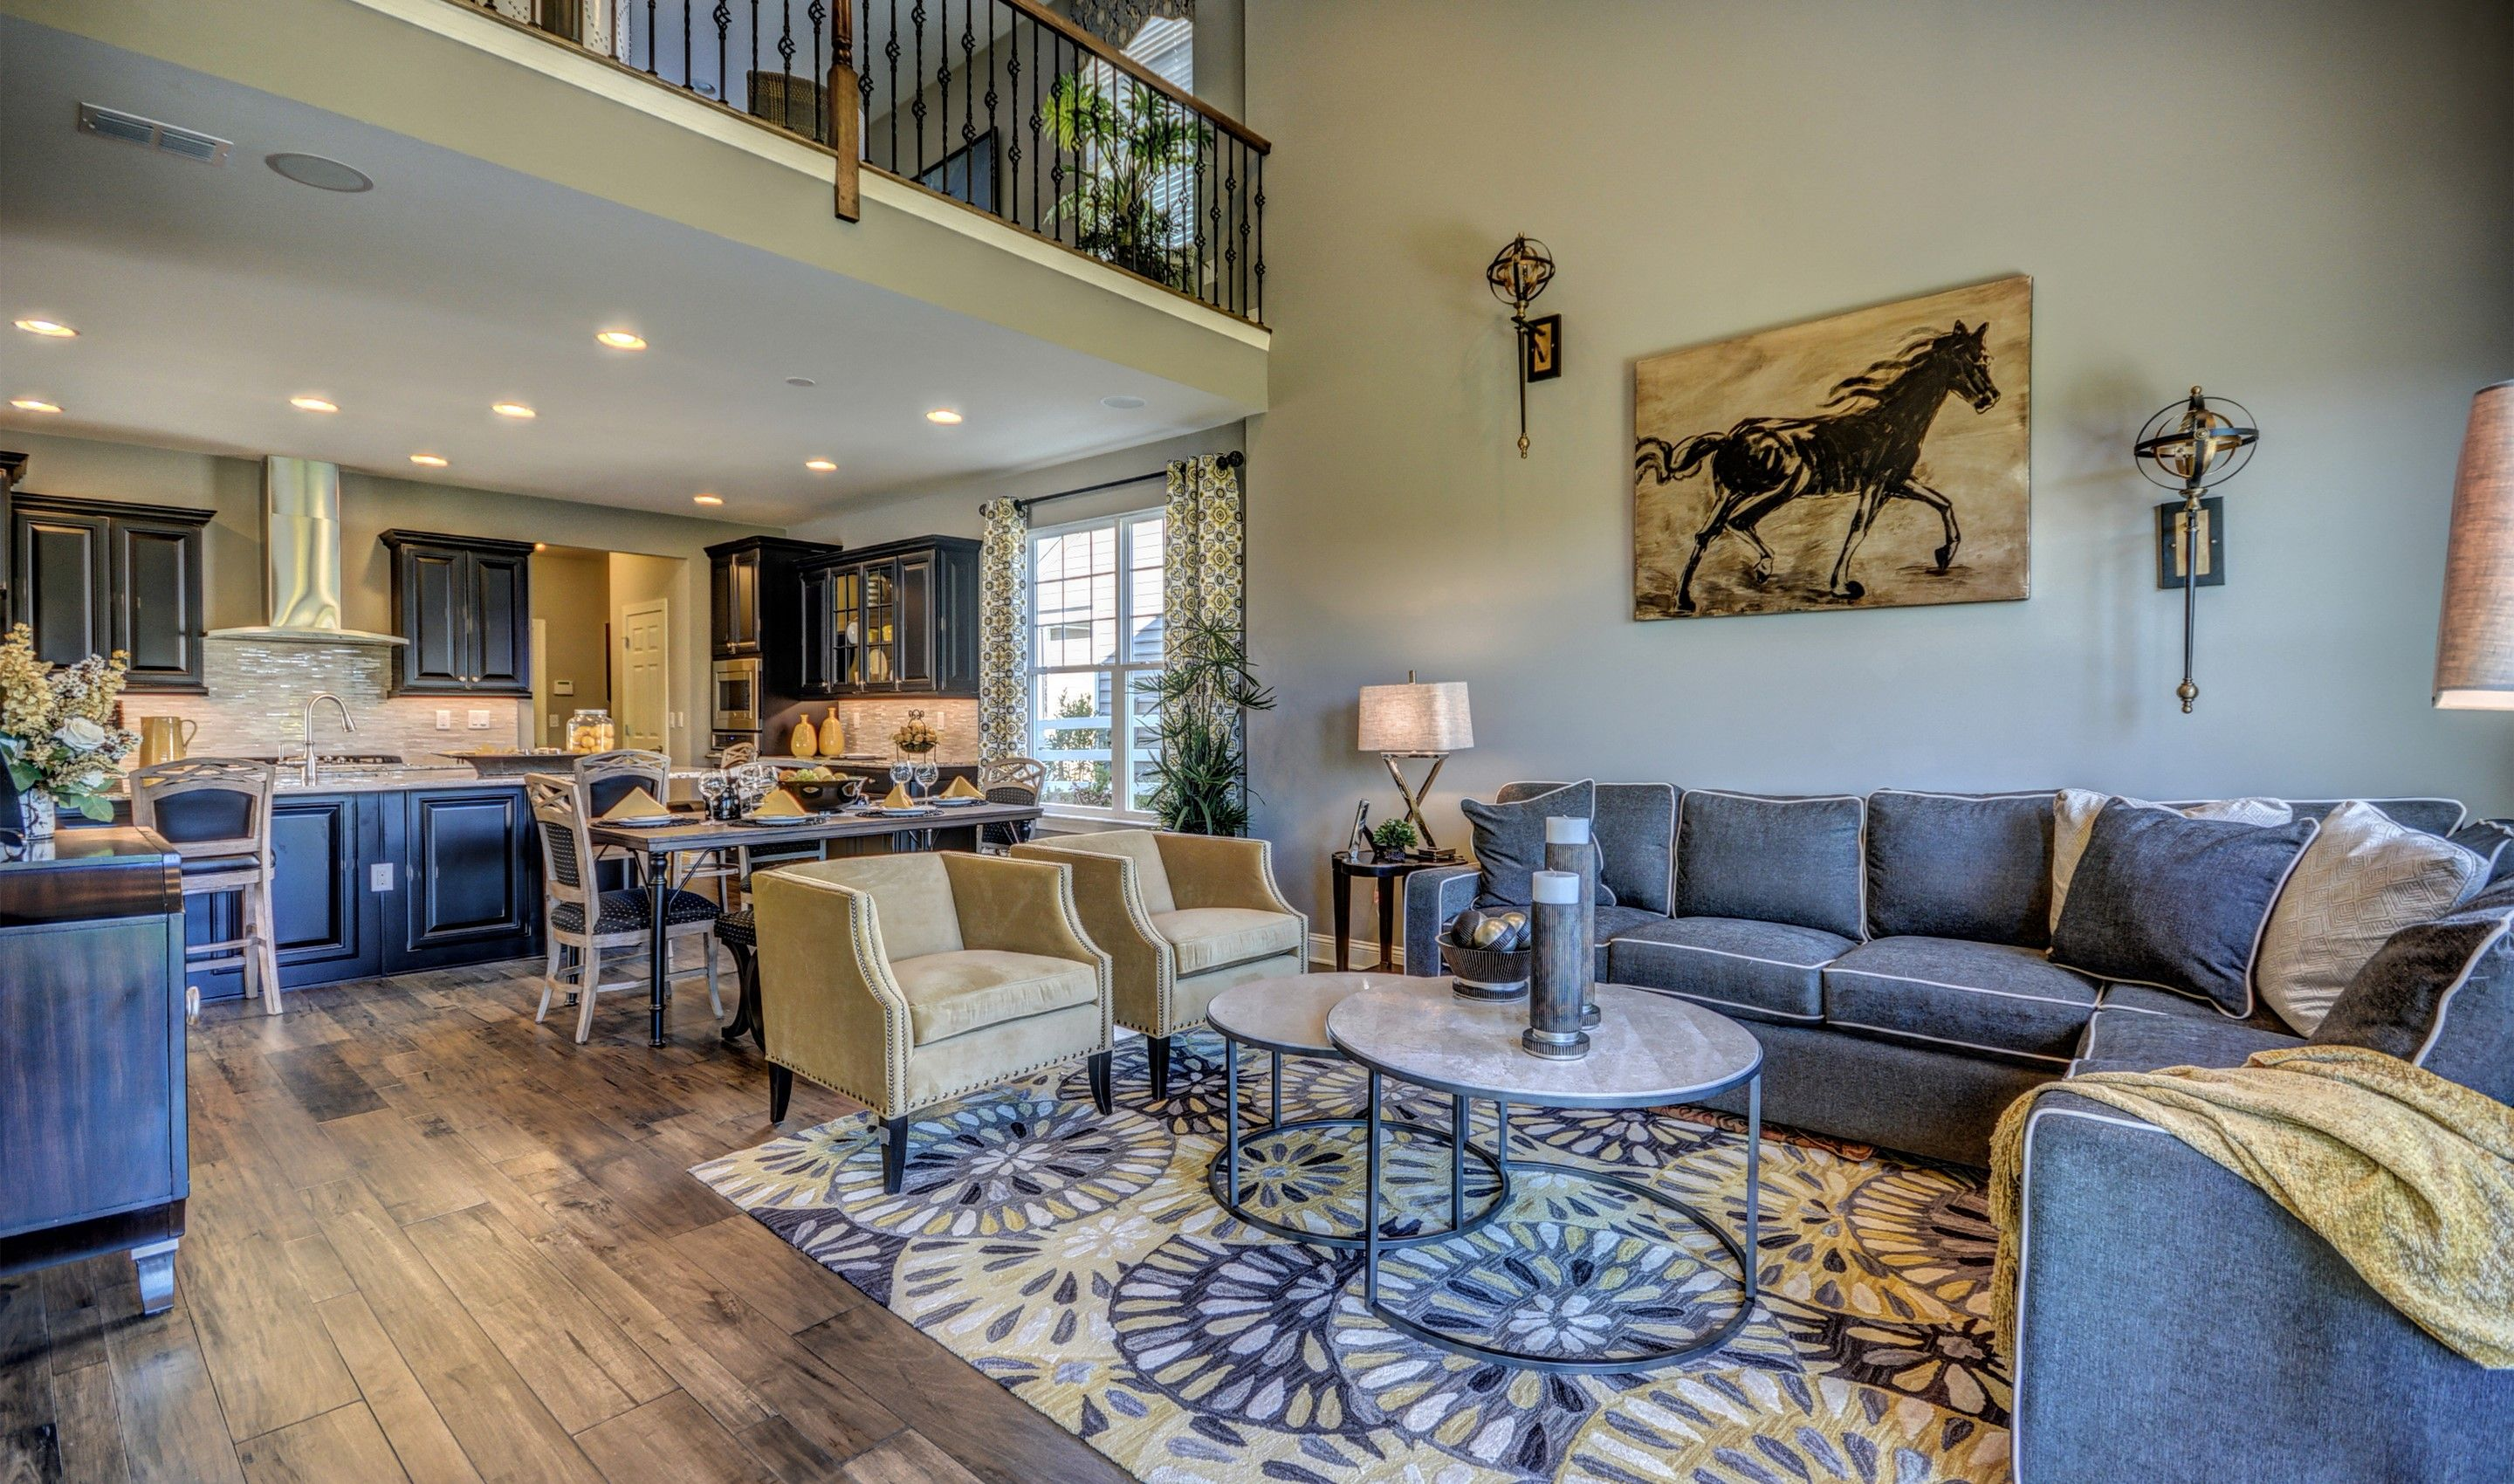 Single Family for Sale at Monterey Loft 18 Mallard Court, Homesite 204 Howell, New Jersey 07731 United States